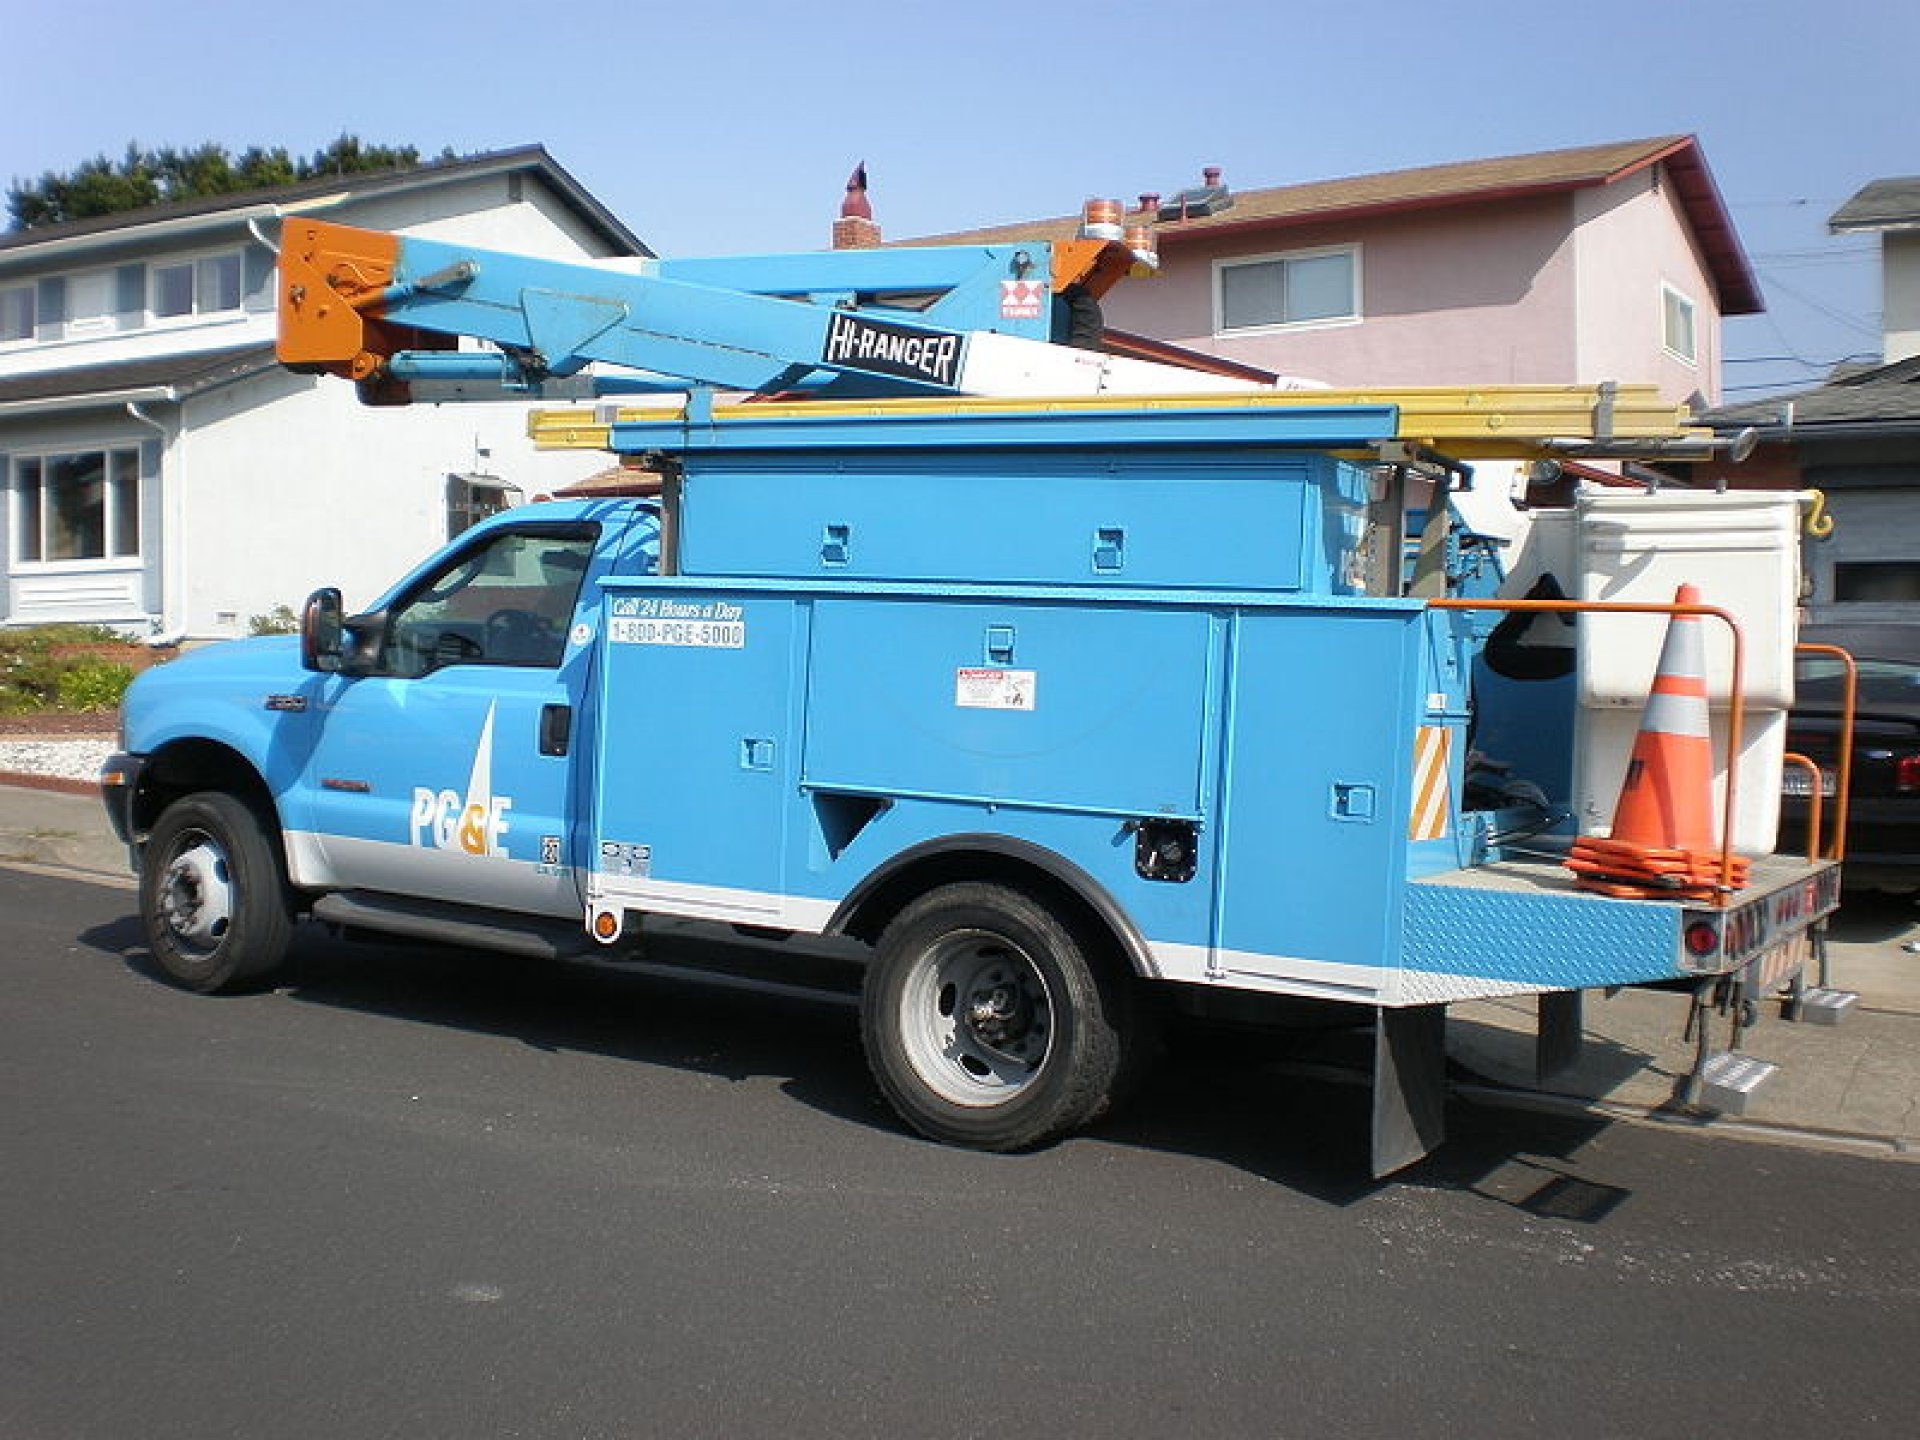 A PG&E truck. | Photo courtesy of Wikimedia Commons